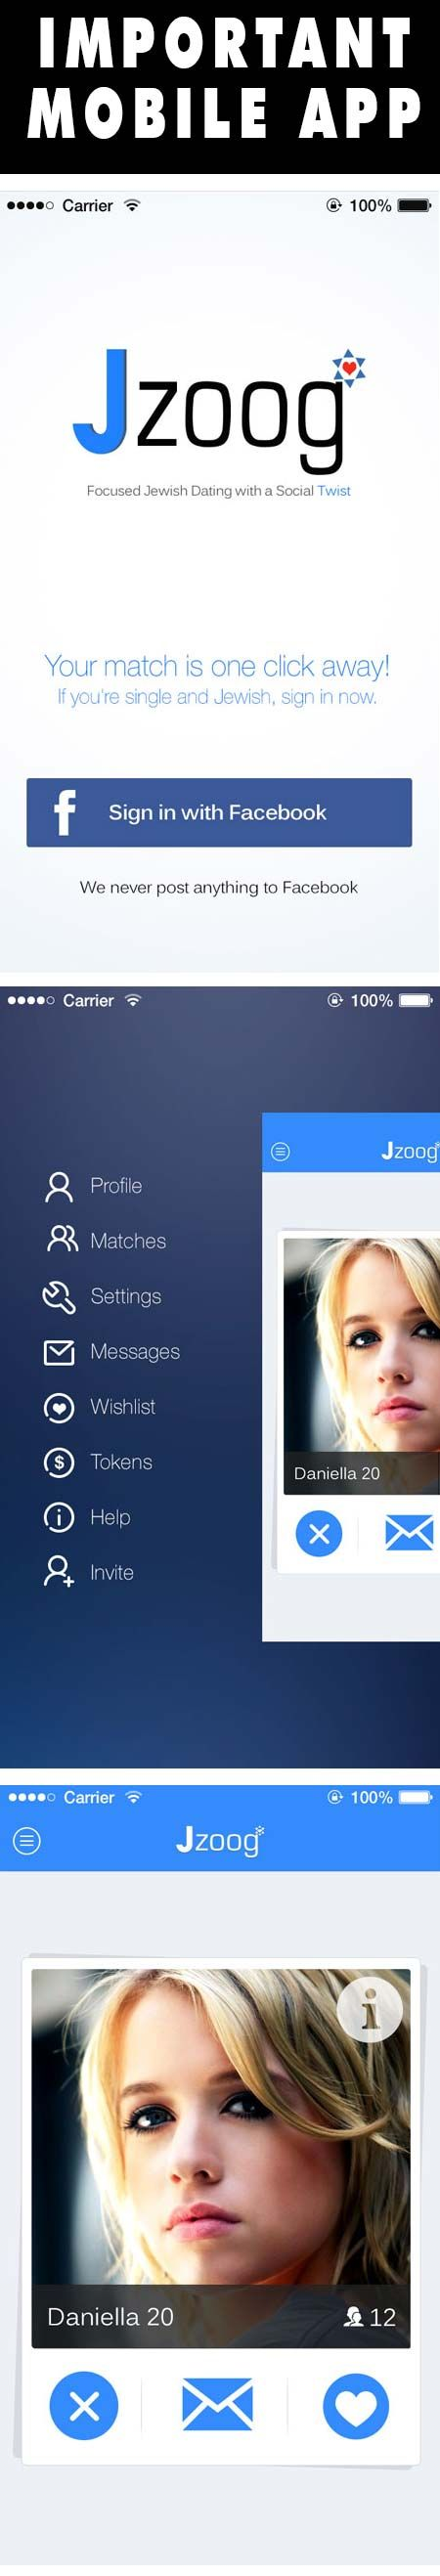 Jzoog is a new Jewish dating app that finds Jewish singles based on search criteria that you create. Login via Facebook and create your free profile on the dating app or on the Jzoog.com website.